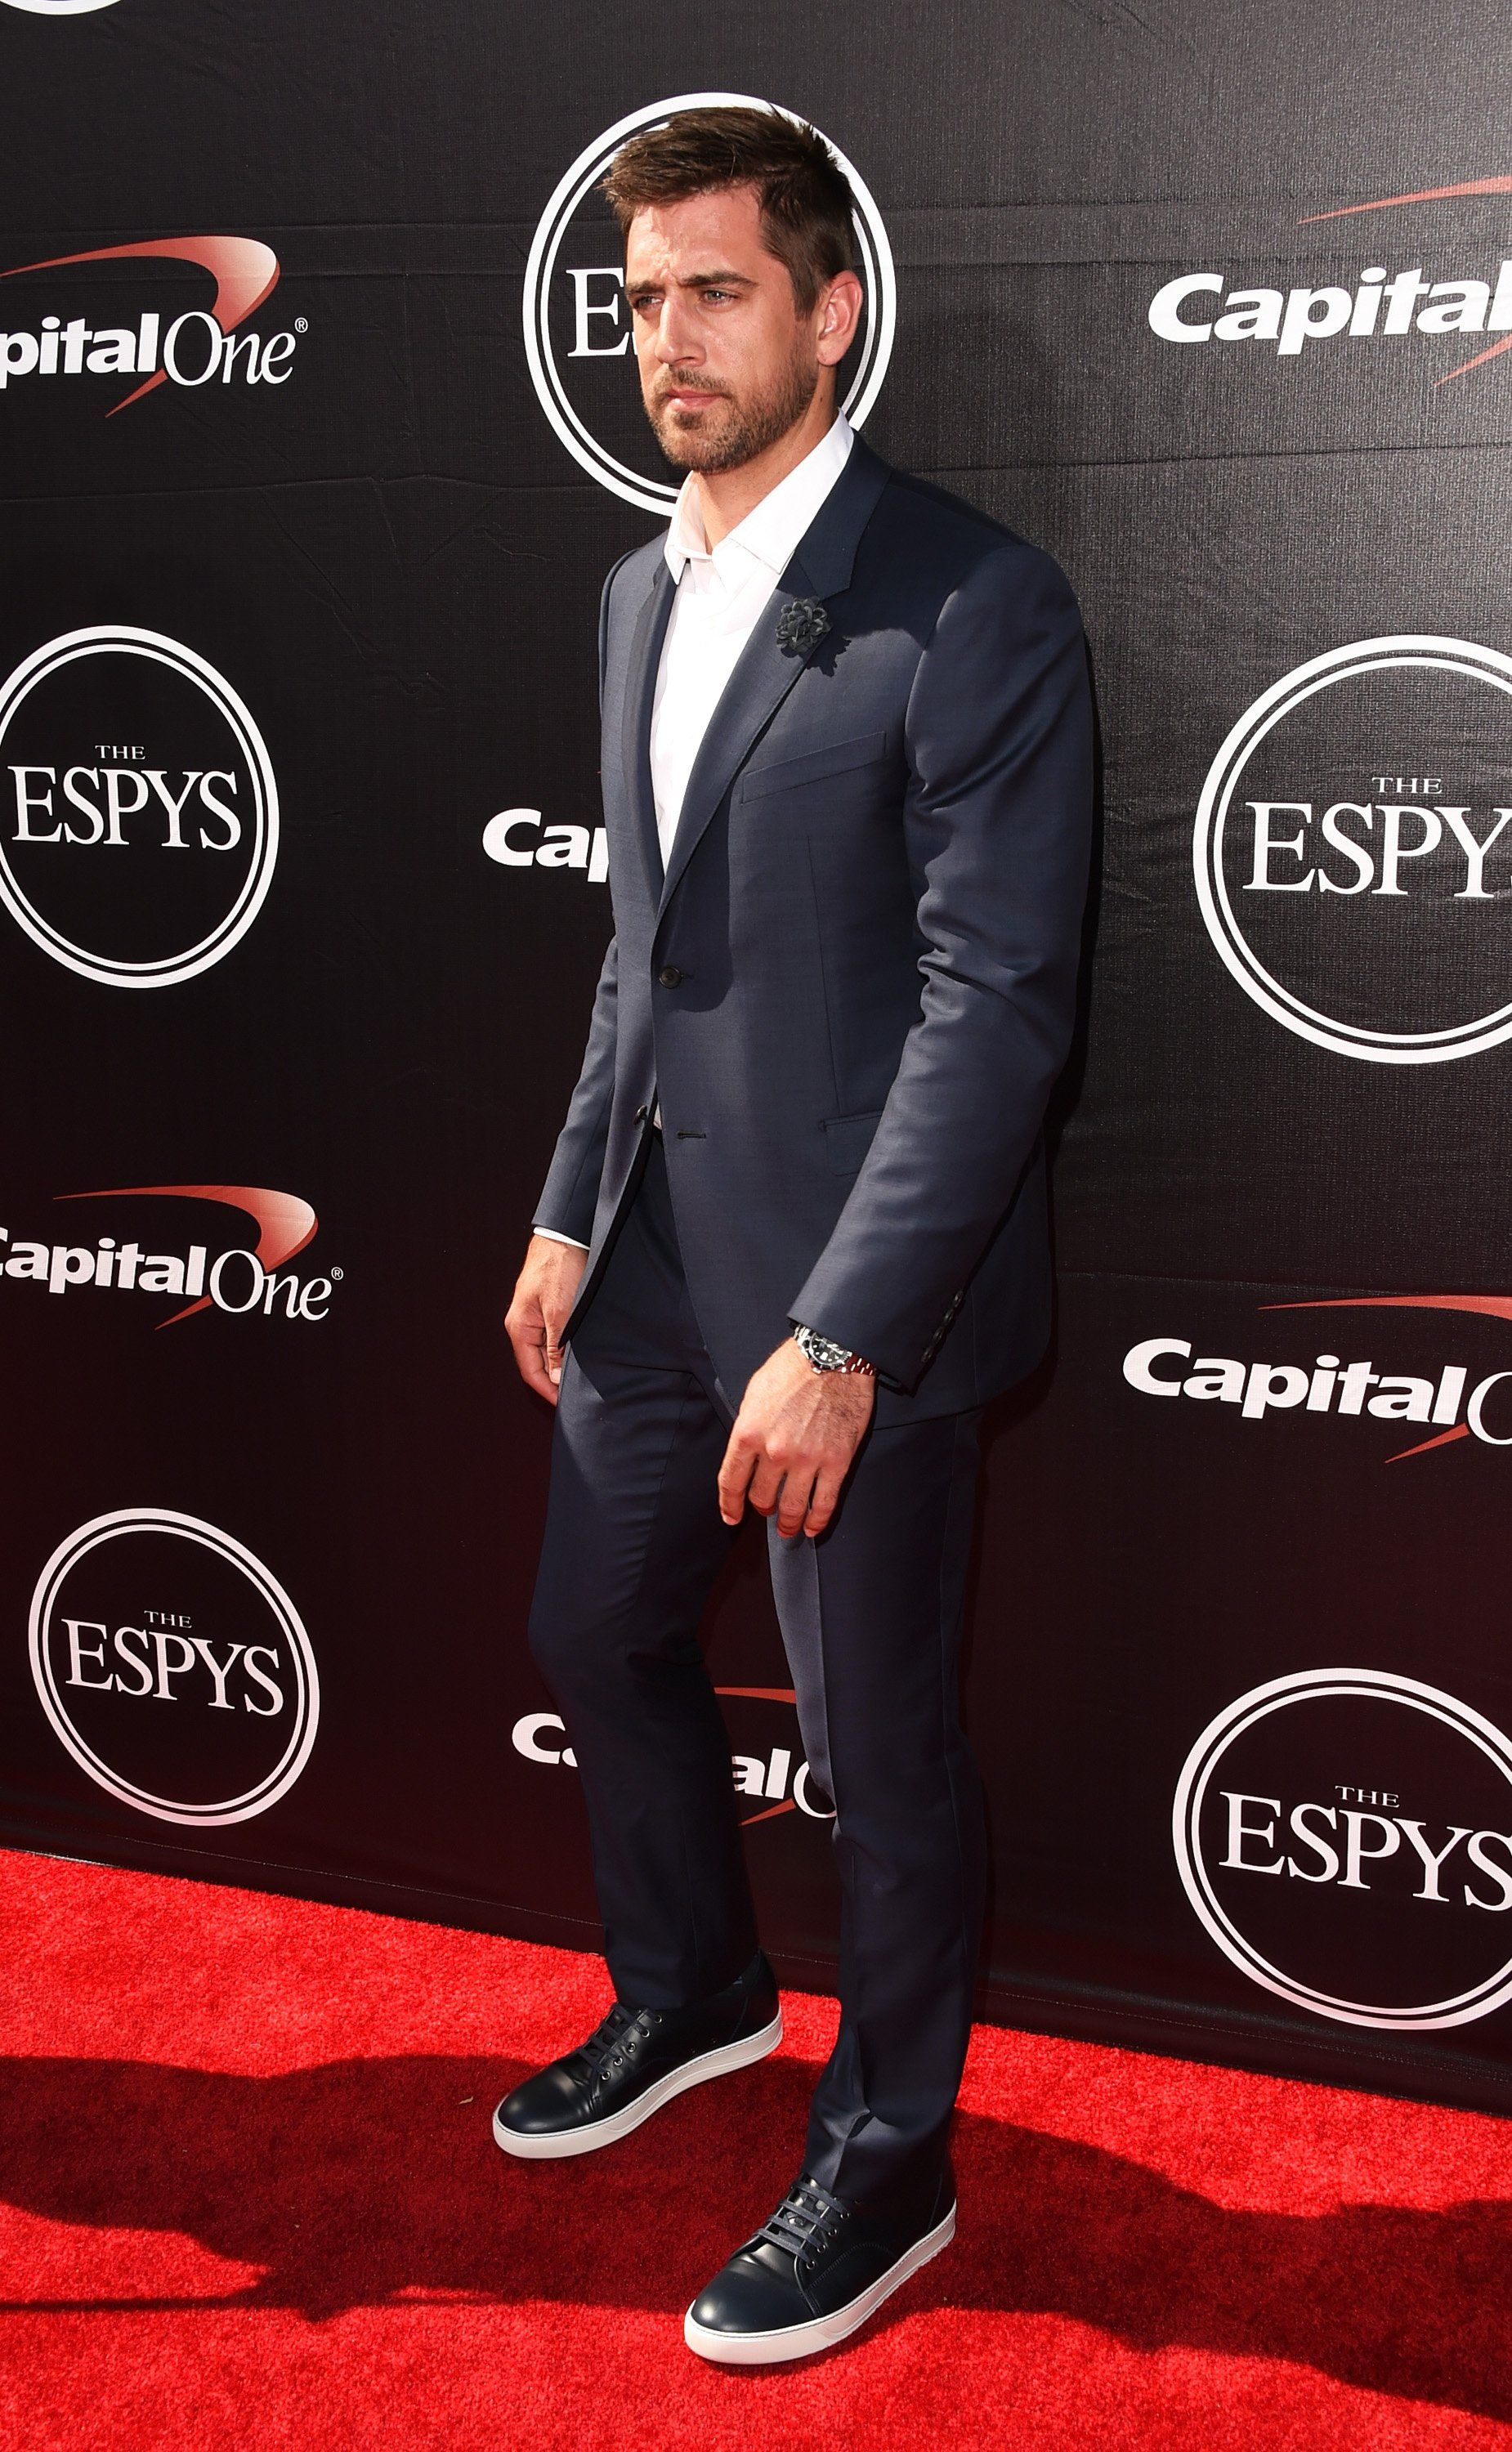 12 Lessons In Suiting From The Espys Best Dressed Suits And Sneakers Men Wearing Dresses Tuxedo For Men